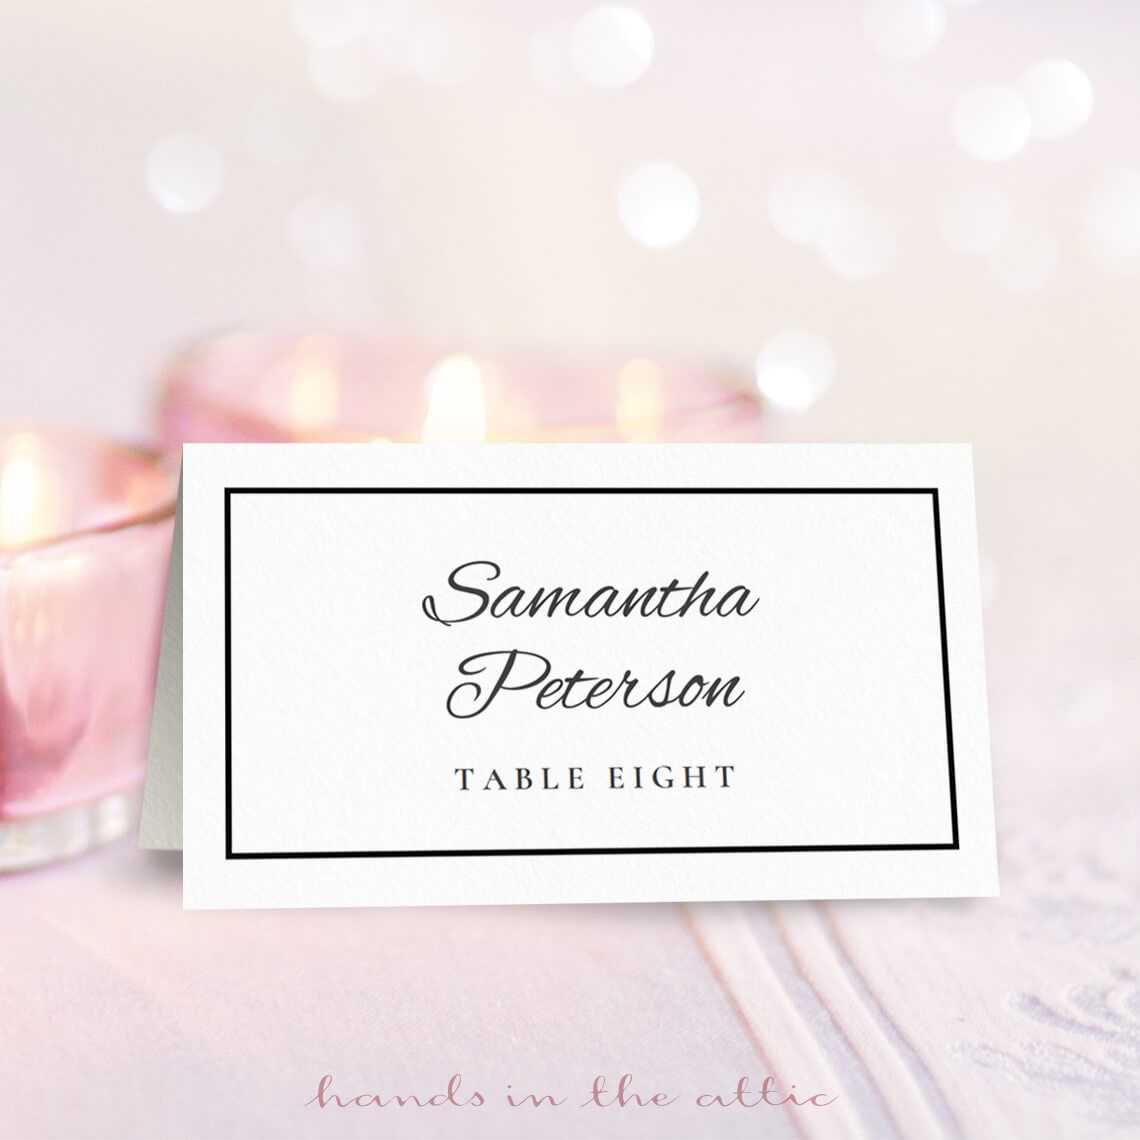 8 Free Wedding Place Card Templates With Regard To Table Name Cards Template Free